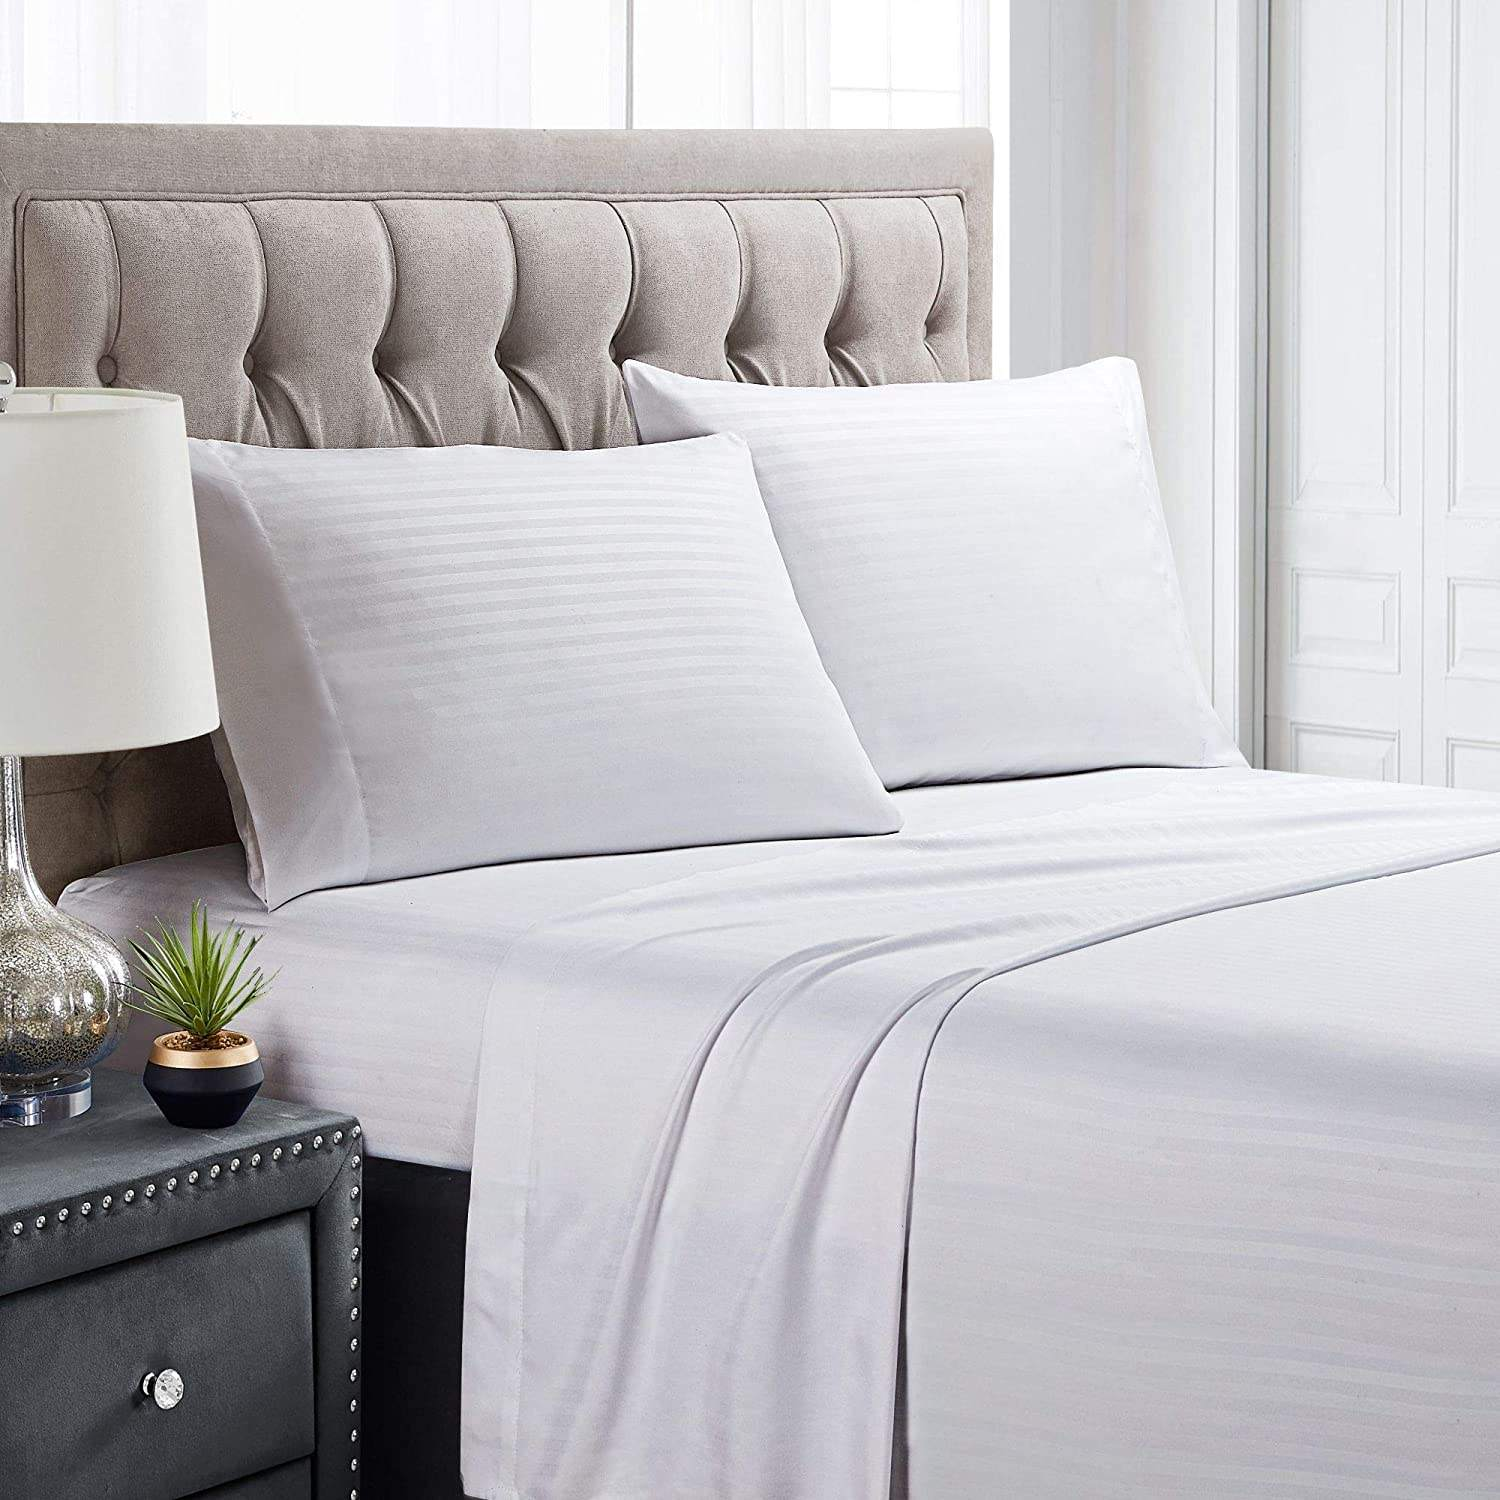 "OEM hotel satin fabric bed sheet 300tc with 1"" stripe for bedding set"